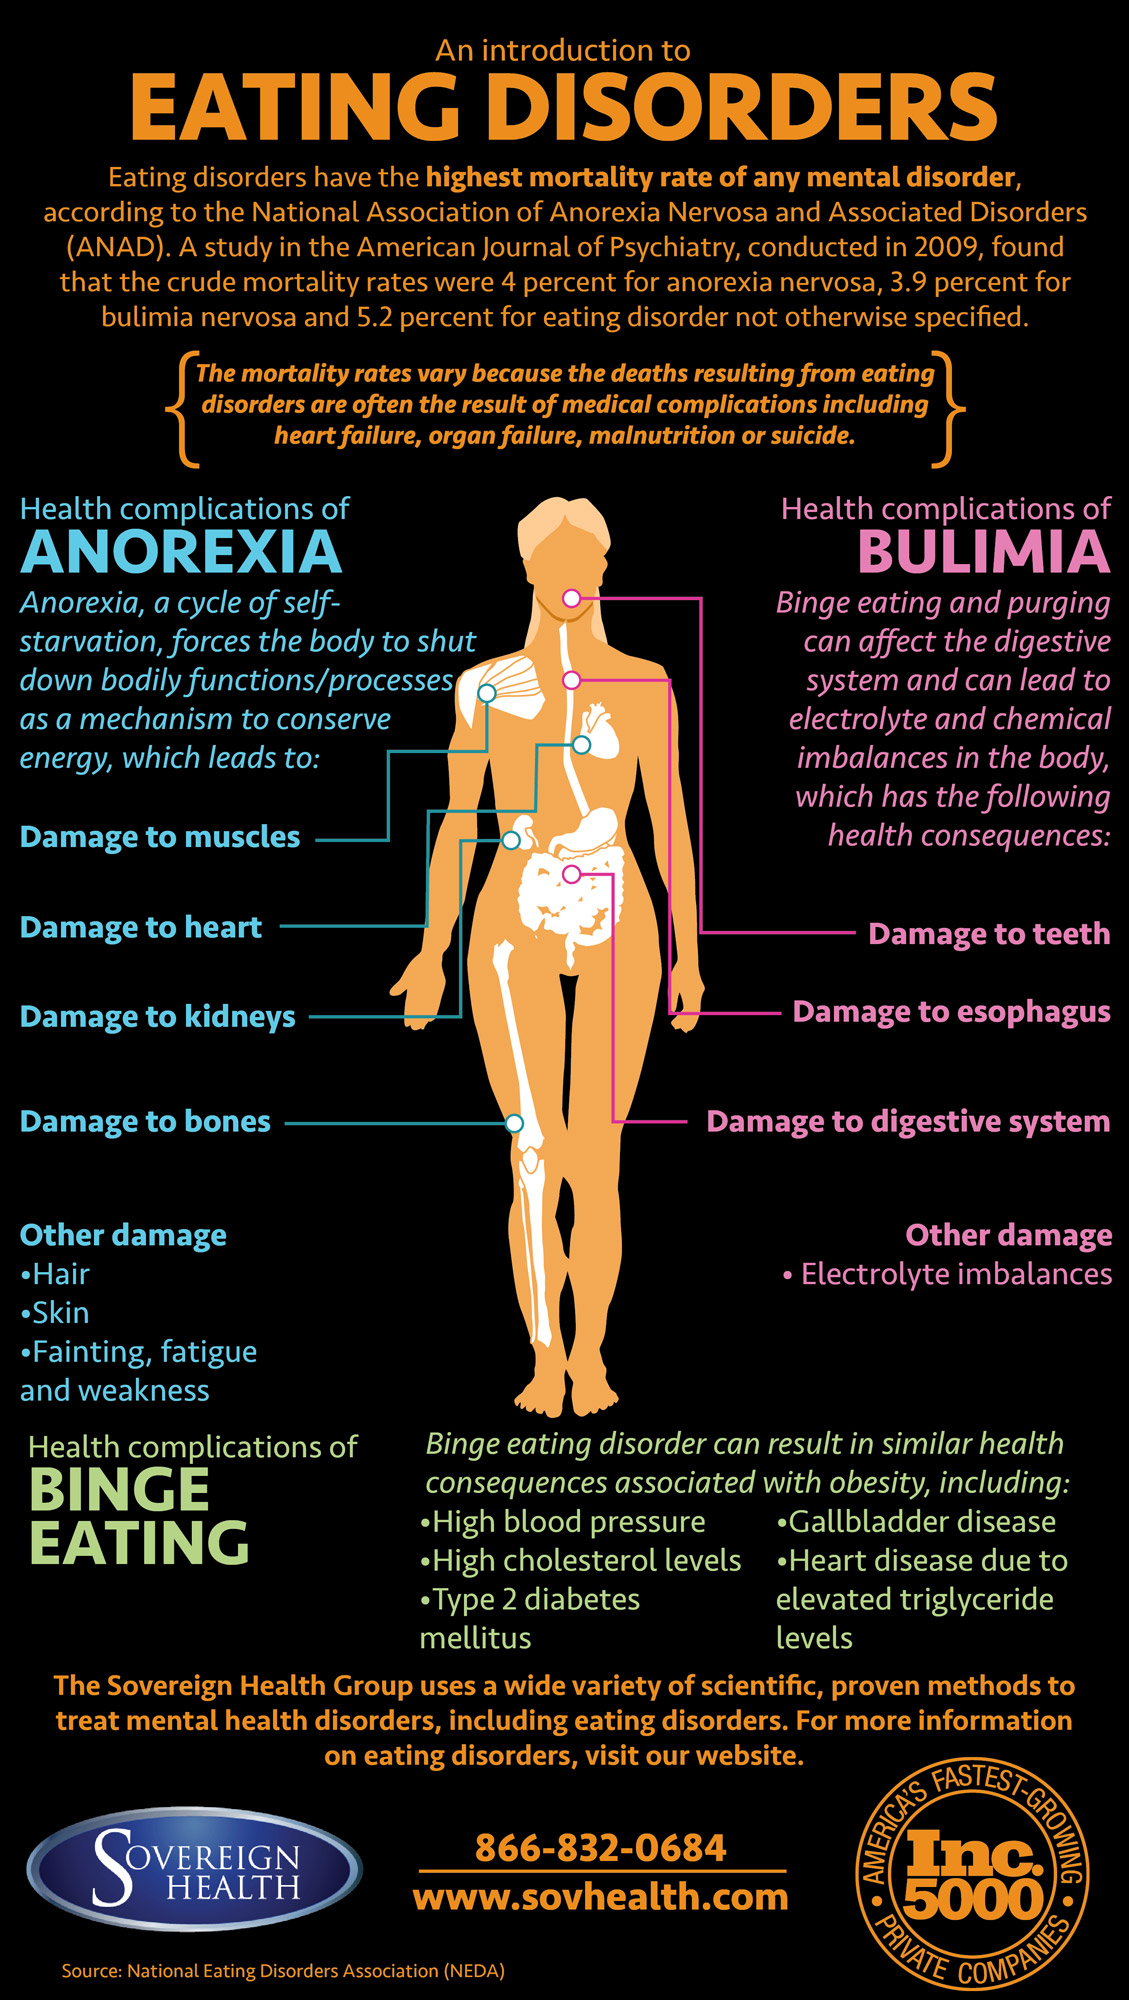 an analysis of anorexia and bulima disorders and their treatment methods The eating disorder bulimia nervosa is characterized by a period of  family and  twin studies indicate that bulimia nervosa is about 55% heritable, meaning that   although many options exist for treating bulimia nervosa, the.